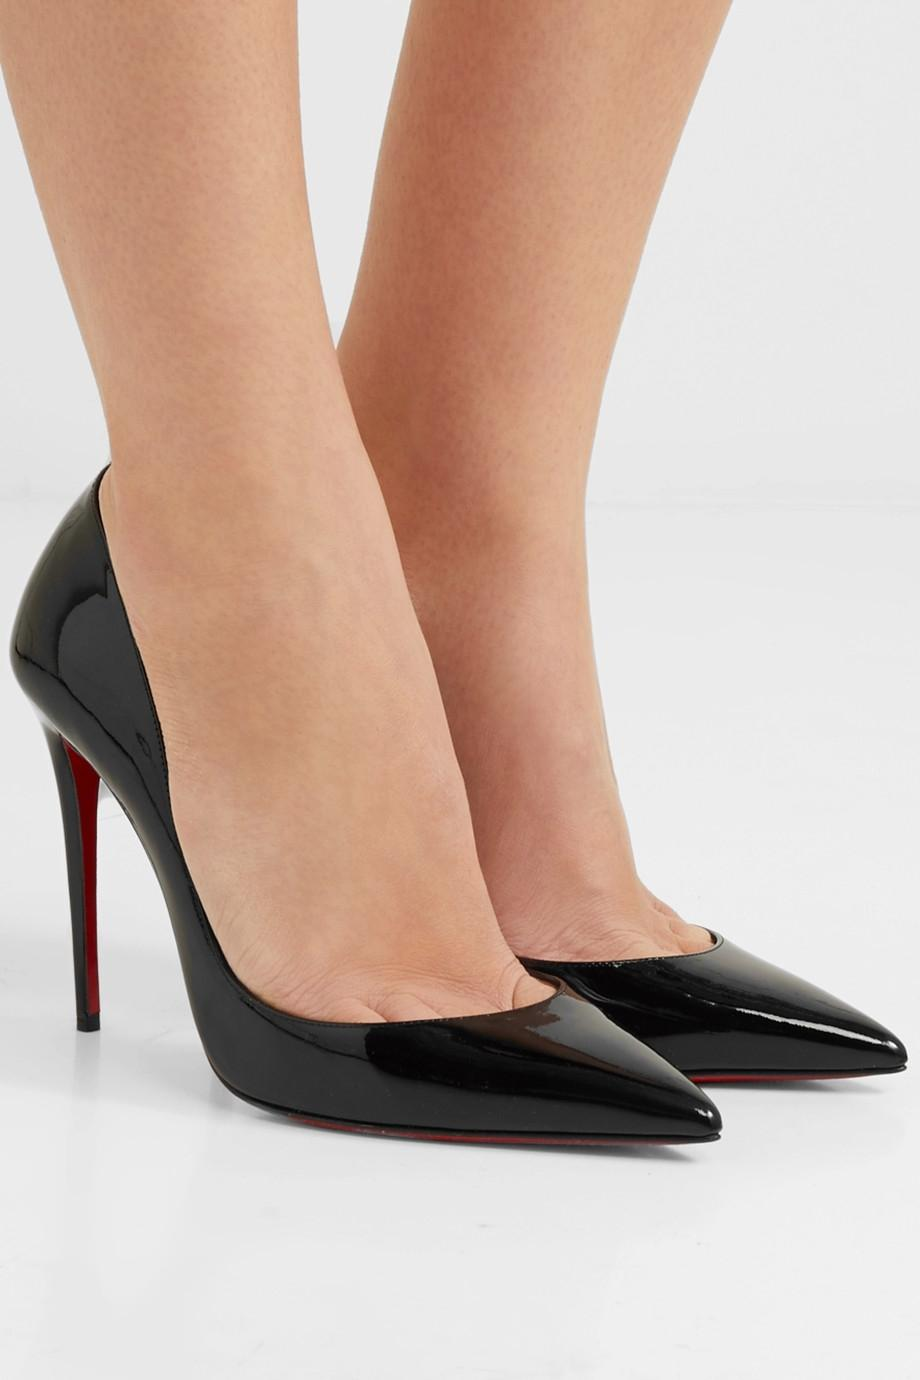 red bottom shoes price